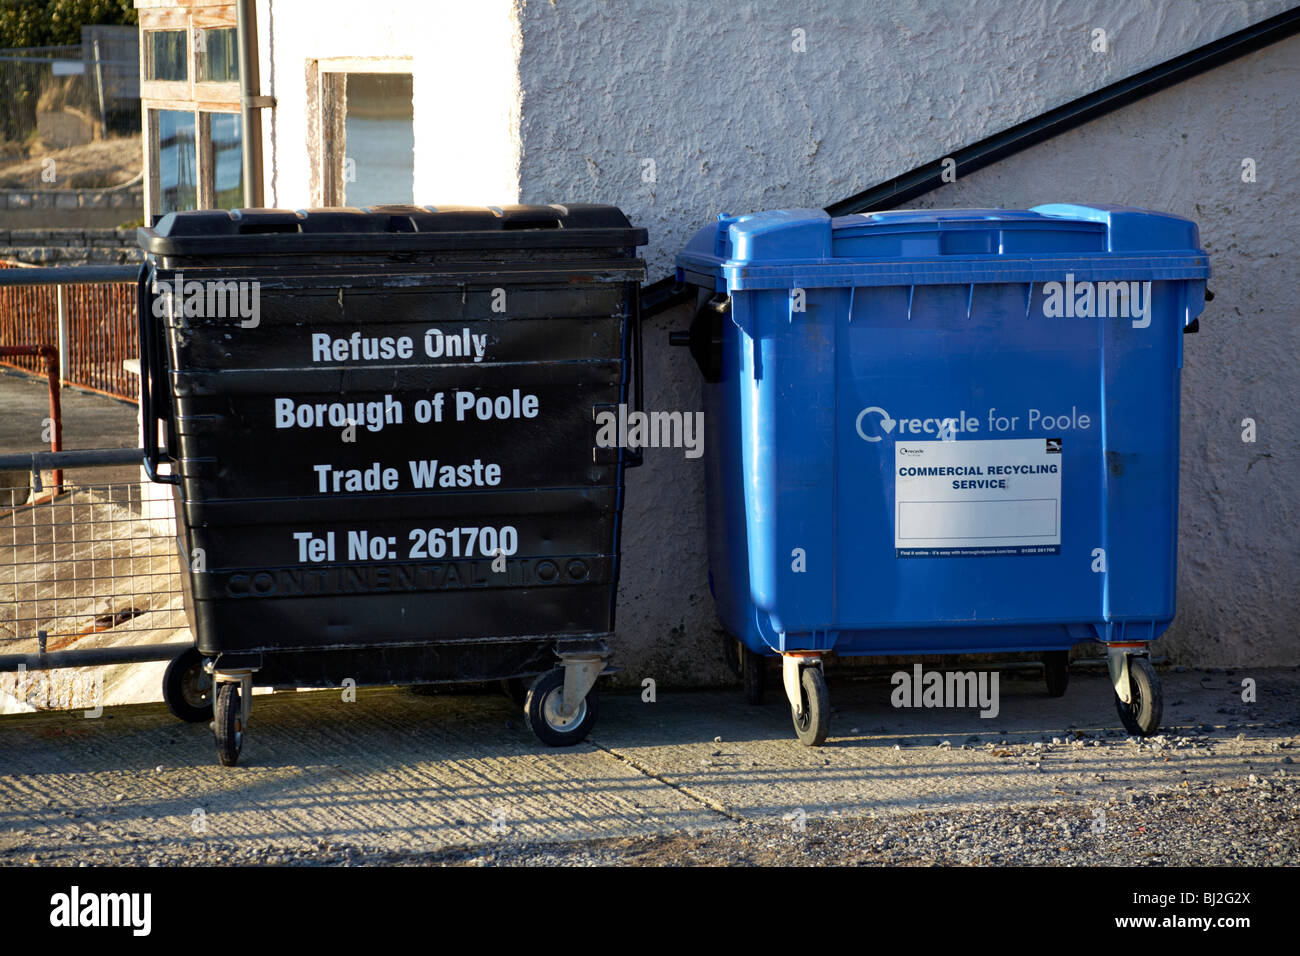 Borough of Poole Trade Waste and Commercial Recycling Service wheelie bins - Stock Image